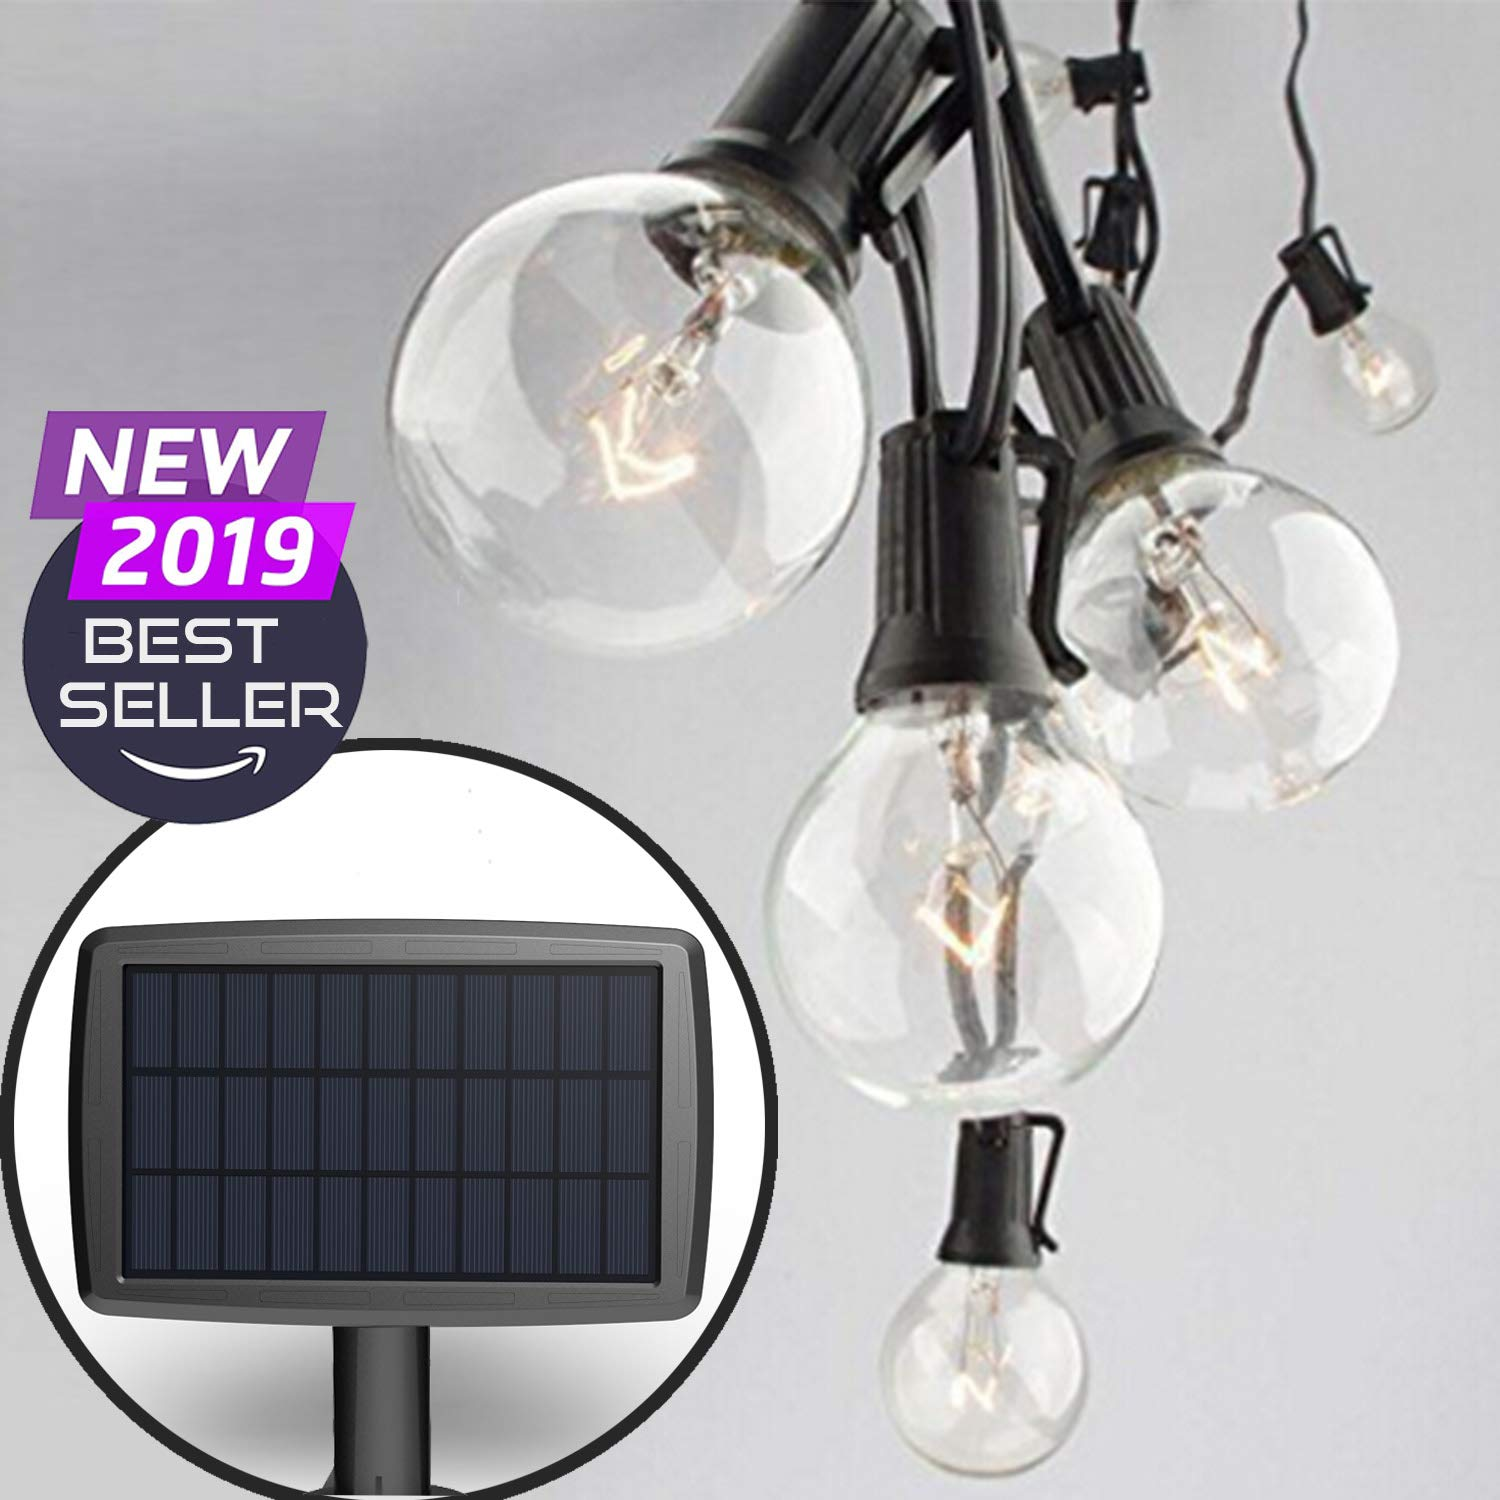 Sunlitec Solar String Lights Waterproof LED Indoor/Outdoor Hanging Umbrella Lights with 25 Bulbs - 27 Ft Patio Lights for Deckyard Tents Market Cafe Gazebo Porch Party Decor by Sunlitec